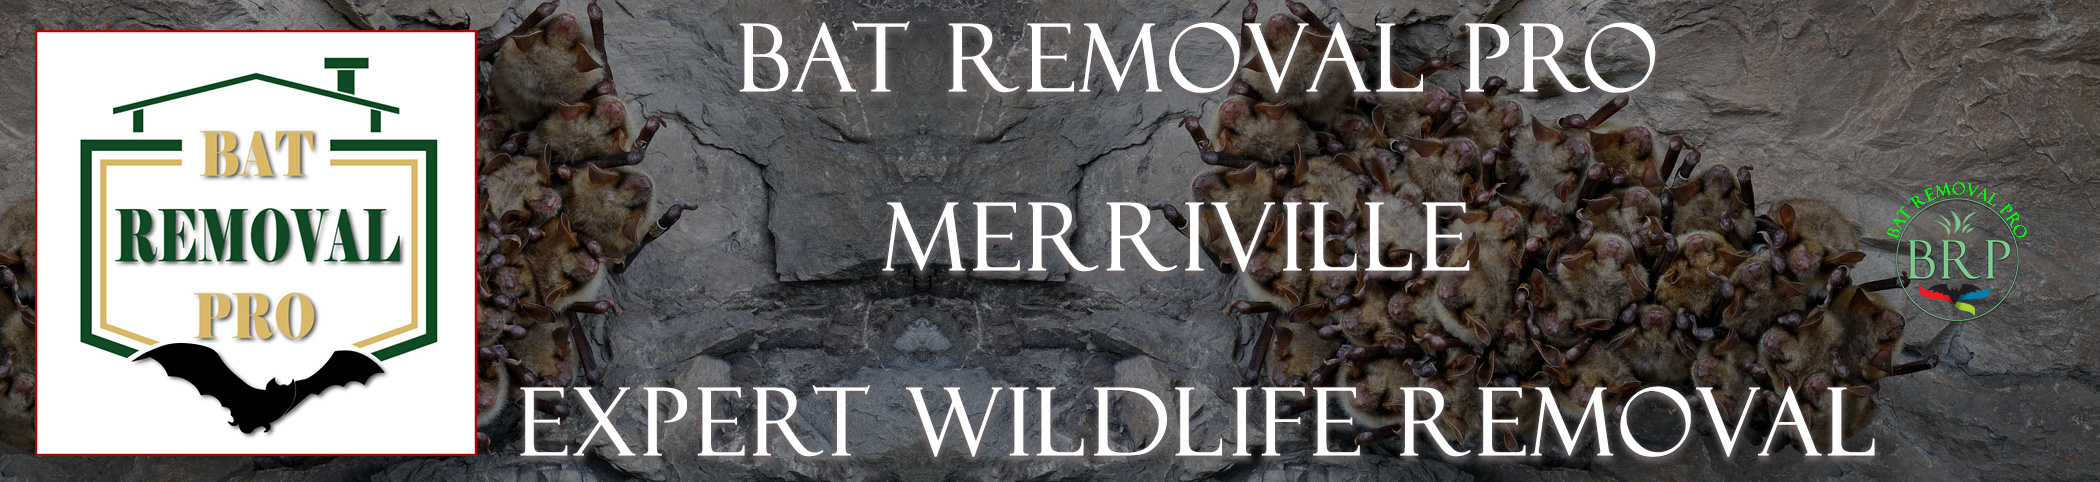 bat removal merrillville indiana exclusion of bats in homes and